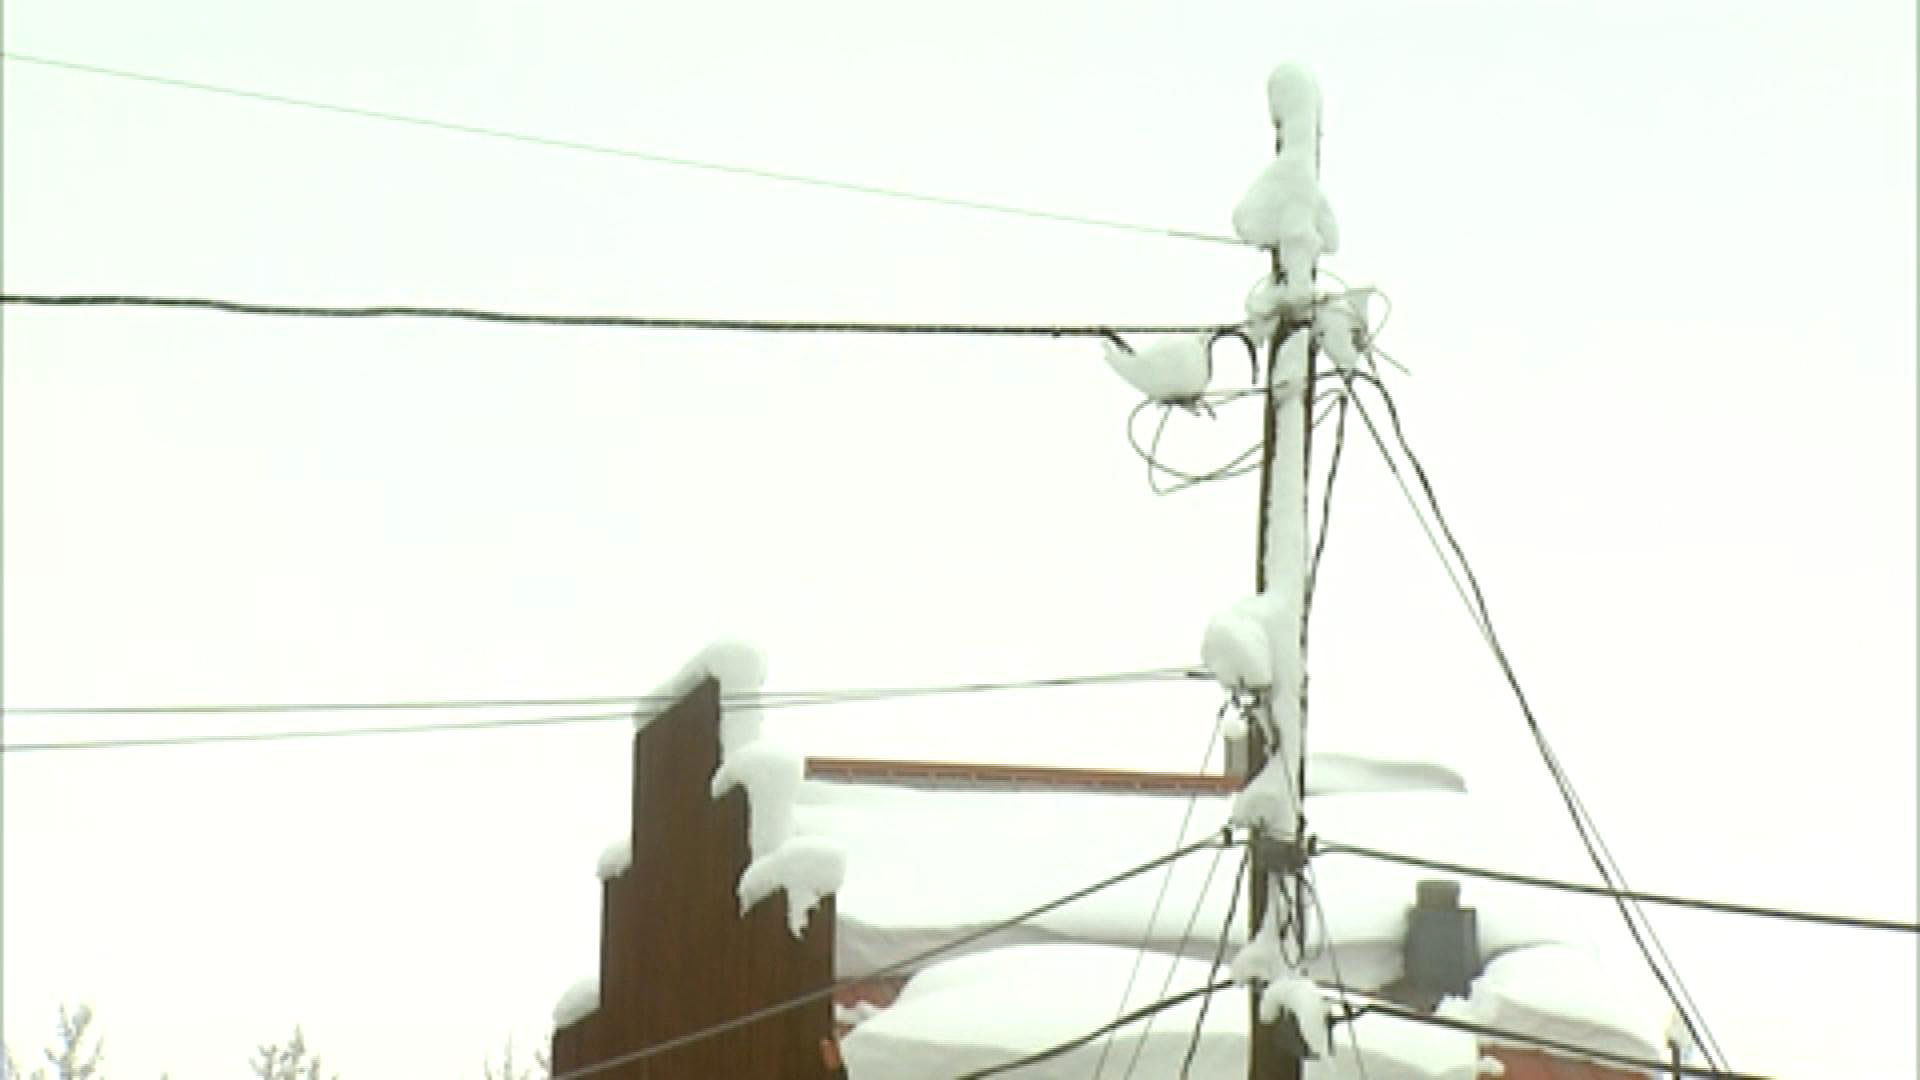 Power lines in Fairplay on Tuesday (credit: CBS)